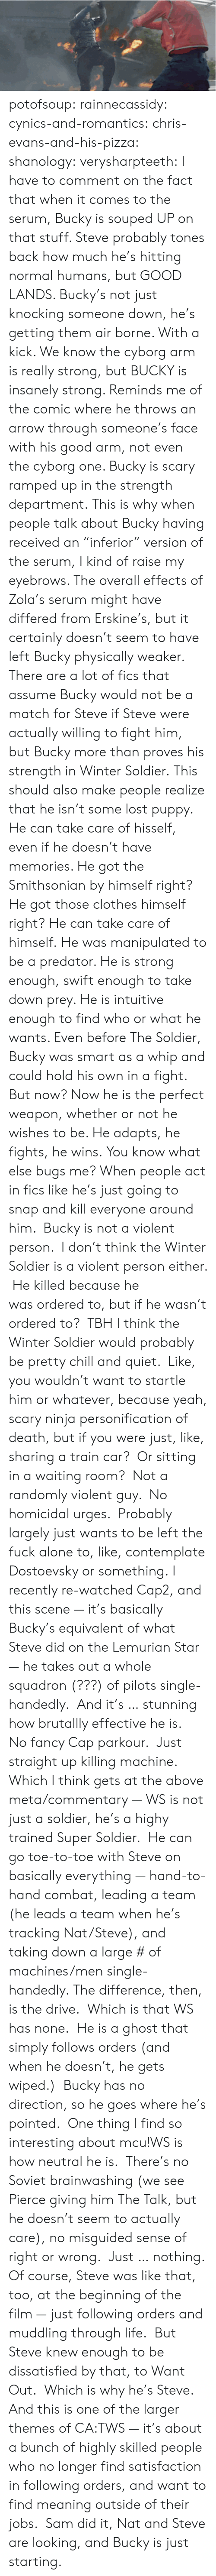 """Being Alone, Chill, and Chris Evans: potofsoup: rainnecassidy:  cynics-and-romantics:  chris-evans-and-his-pizza:  shanology:  verysharpteeth:  I have to comment on the fact that when it comes to the serum, Bucky is souped UP on that stuff. Steve probably tones back how much he's hitting normal humans, but GOOD LANDS. Bucky's not just knocking someone down, he's getting them air borne. With a kick. We know the cyborg arm is really strong, but BUCKY is insanely strong. Reminds me of the comic where he throws an arrow through someone's face with his good arm, not even the cyborg one. Bucky is scary ramped up in the strength department.  This is why when people talk about Bucky having received an """"inferior"""" version of the serum, I kind of raise my eyebrows. The overall effects of Zola's serum might have differed from Erskine's, but it certainly doesn't seem to have left Bucky physically weaker. There are a lot of fics that assume Bucky would not be a match for Steve if Steve were actually willing to fight him, but Bucky more than proves his strength in Winter Soldier.  This should also make people realize that he isn't some lost puppy. He can take care of hisself, even if he doesn't have memories. He got the Smithsonian by himself right? He got those clothes himself right? He can take care of himself.  He was manipulated to be a predator. He is strong enough, swift enough to take down prey. He is intuitive enough to find who or what he wants. Even before The Soldier, Bucky was smart as a whip and could hold his own in a fight. But now? Now he is the perfect weapon, whether or not he wishes to be. He adapts, he fights, he wins.  You know what else bugs me? When people act in fics like he's just going to snap and kill everyone around him. Bucky is not a violent person. I don't think the Winter Soldier is a violent person either. He killed because he wasordered to, but if he wasn't ordered to? TBH I think the Winter Soldier would probably be pretty chill and quiet. Like, """